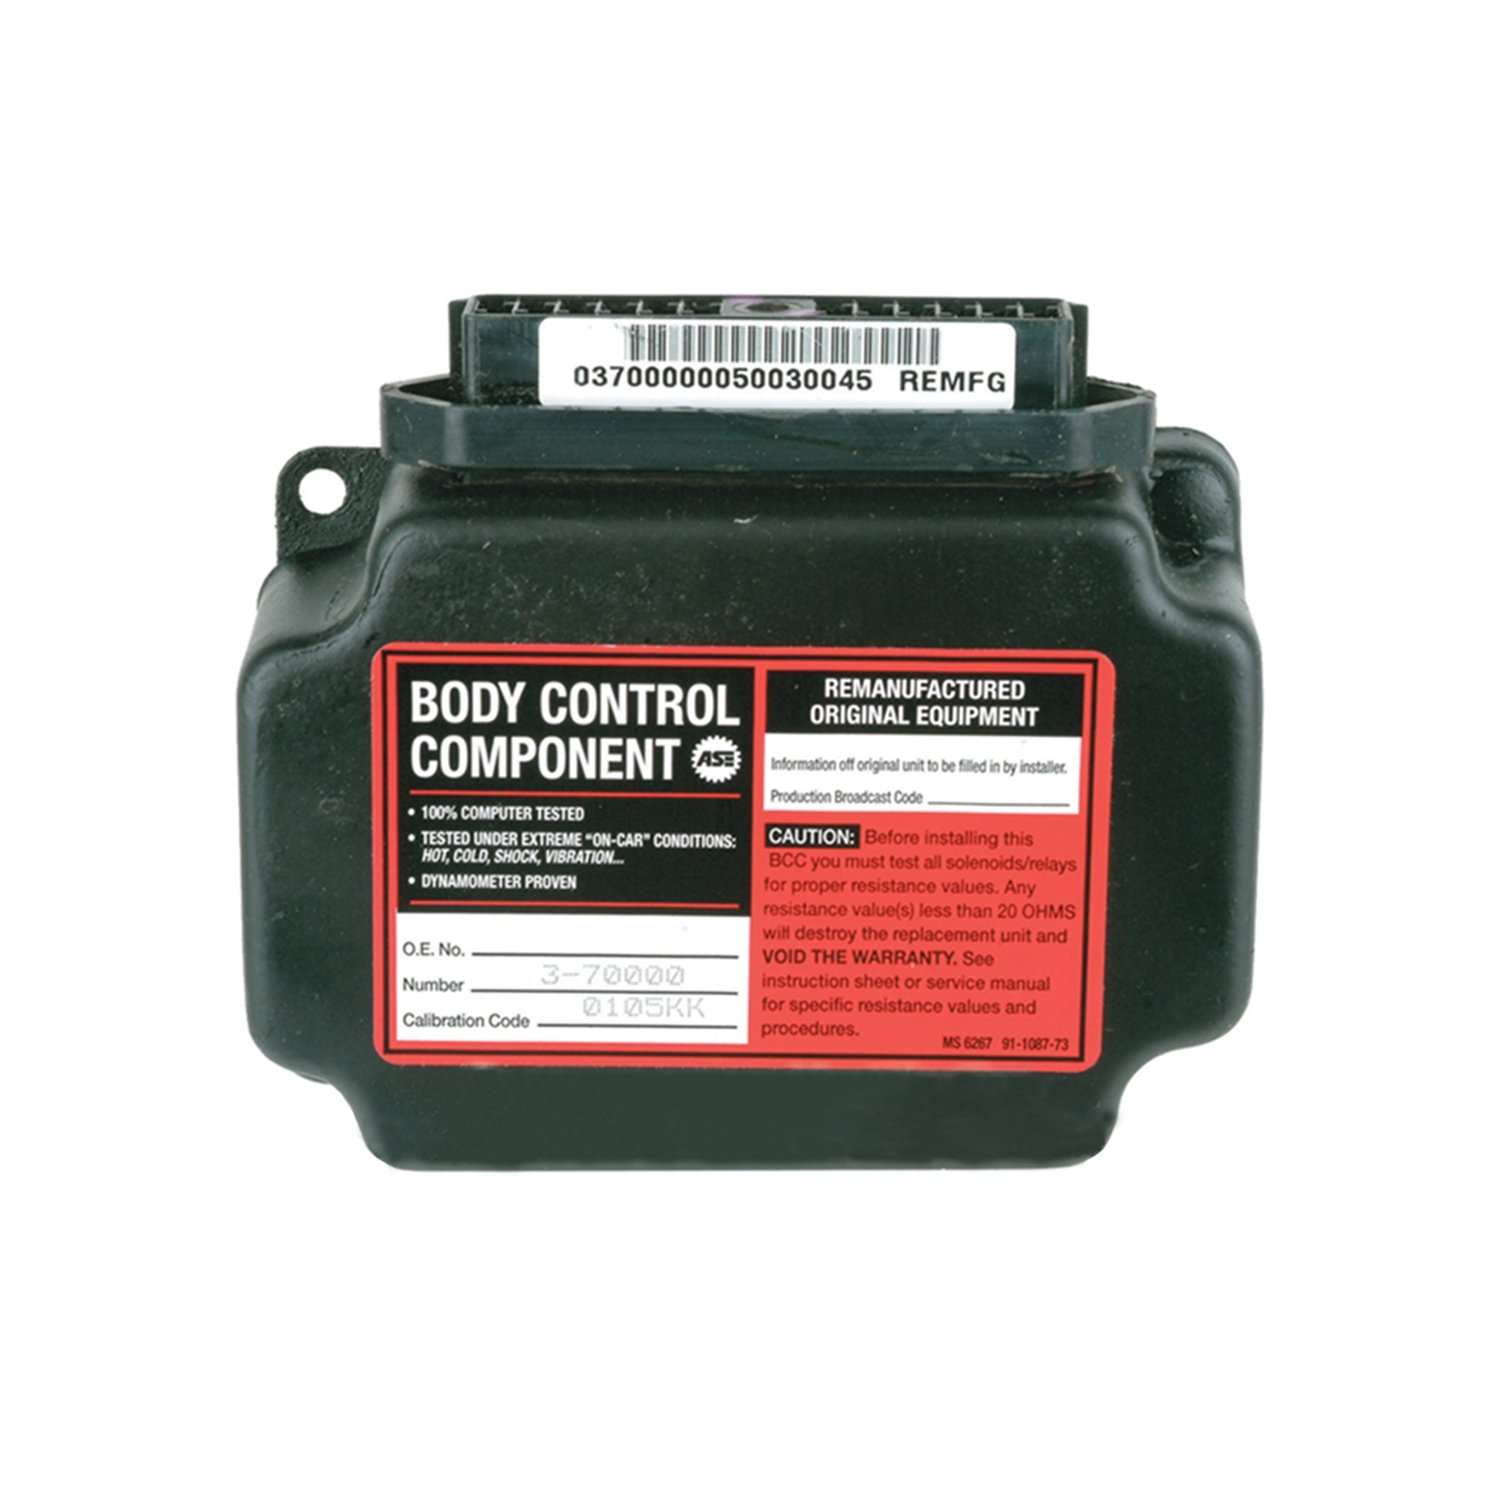 Cardone 73-80025 Remanufactured Body Control Computer A173-80025